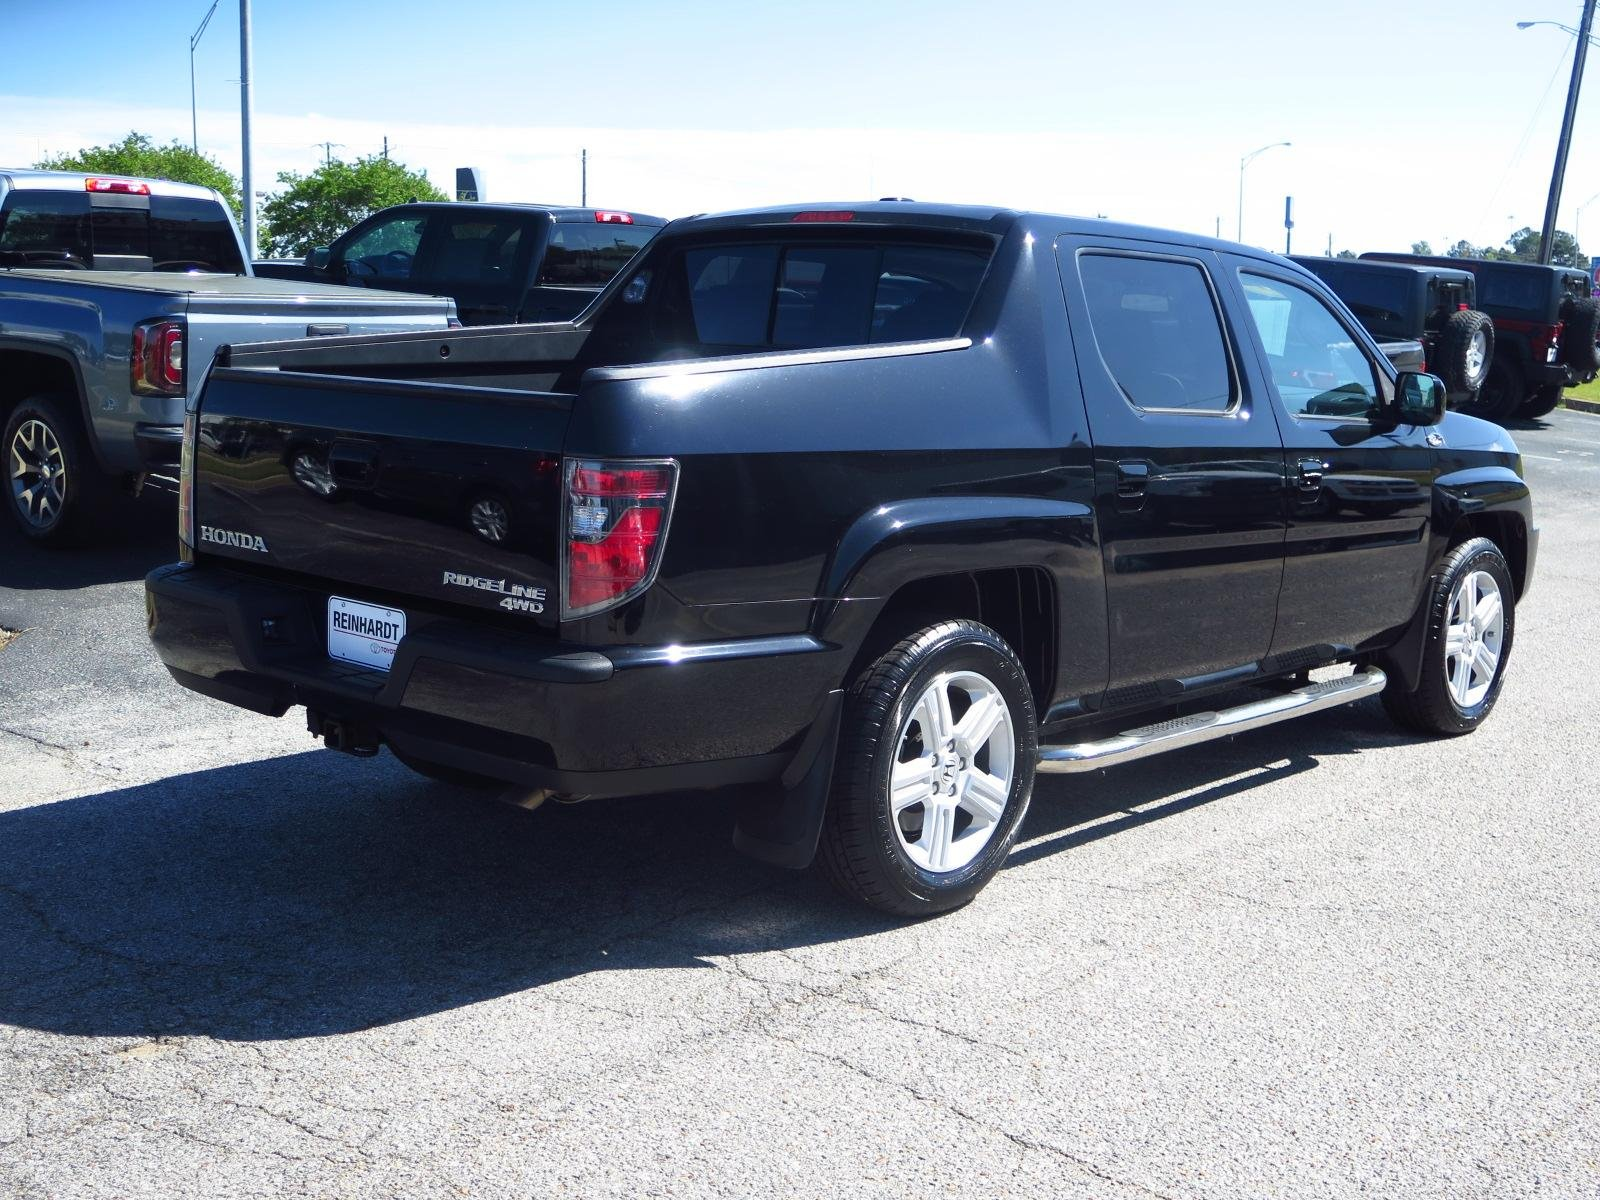 Cars for Sale Near Me Under 3000 Inspirational Used Cars for Sale In Birmingham Alabama by Owners and How to Find